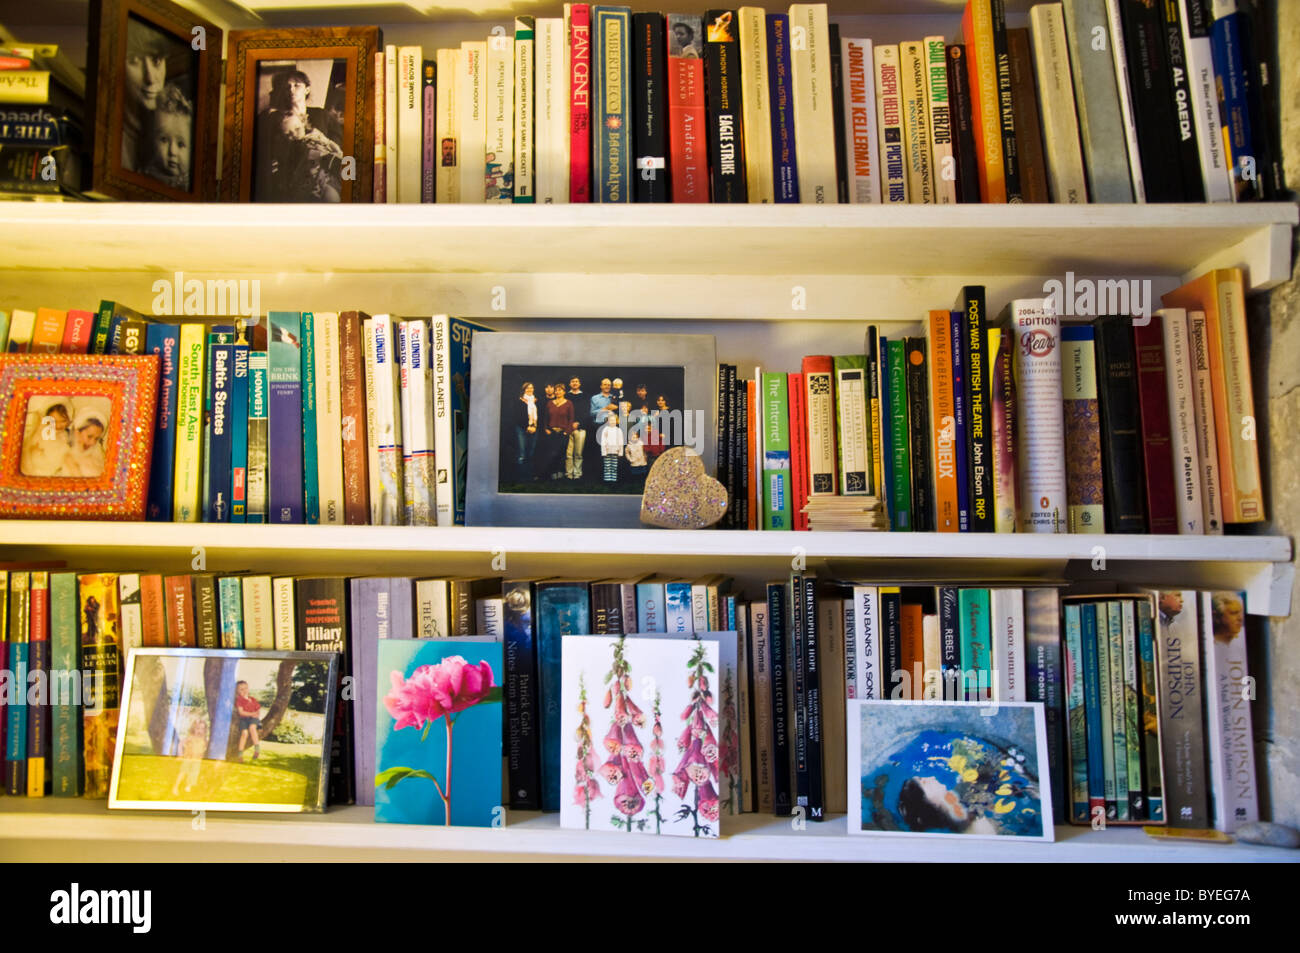 Bookshelf with family photos and cards - Stock Image